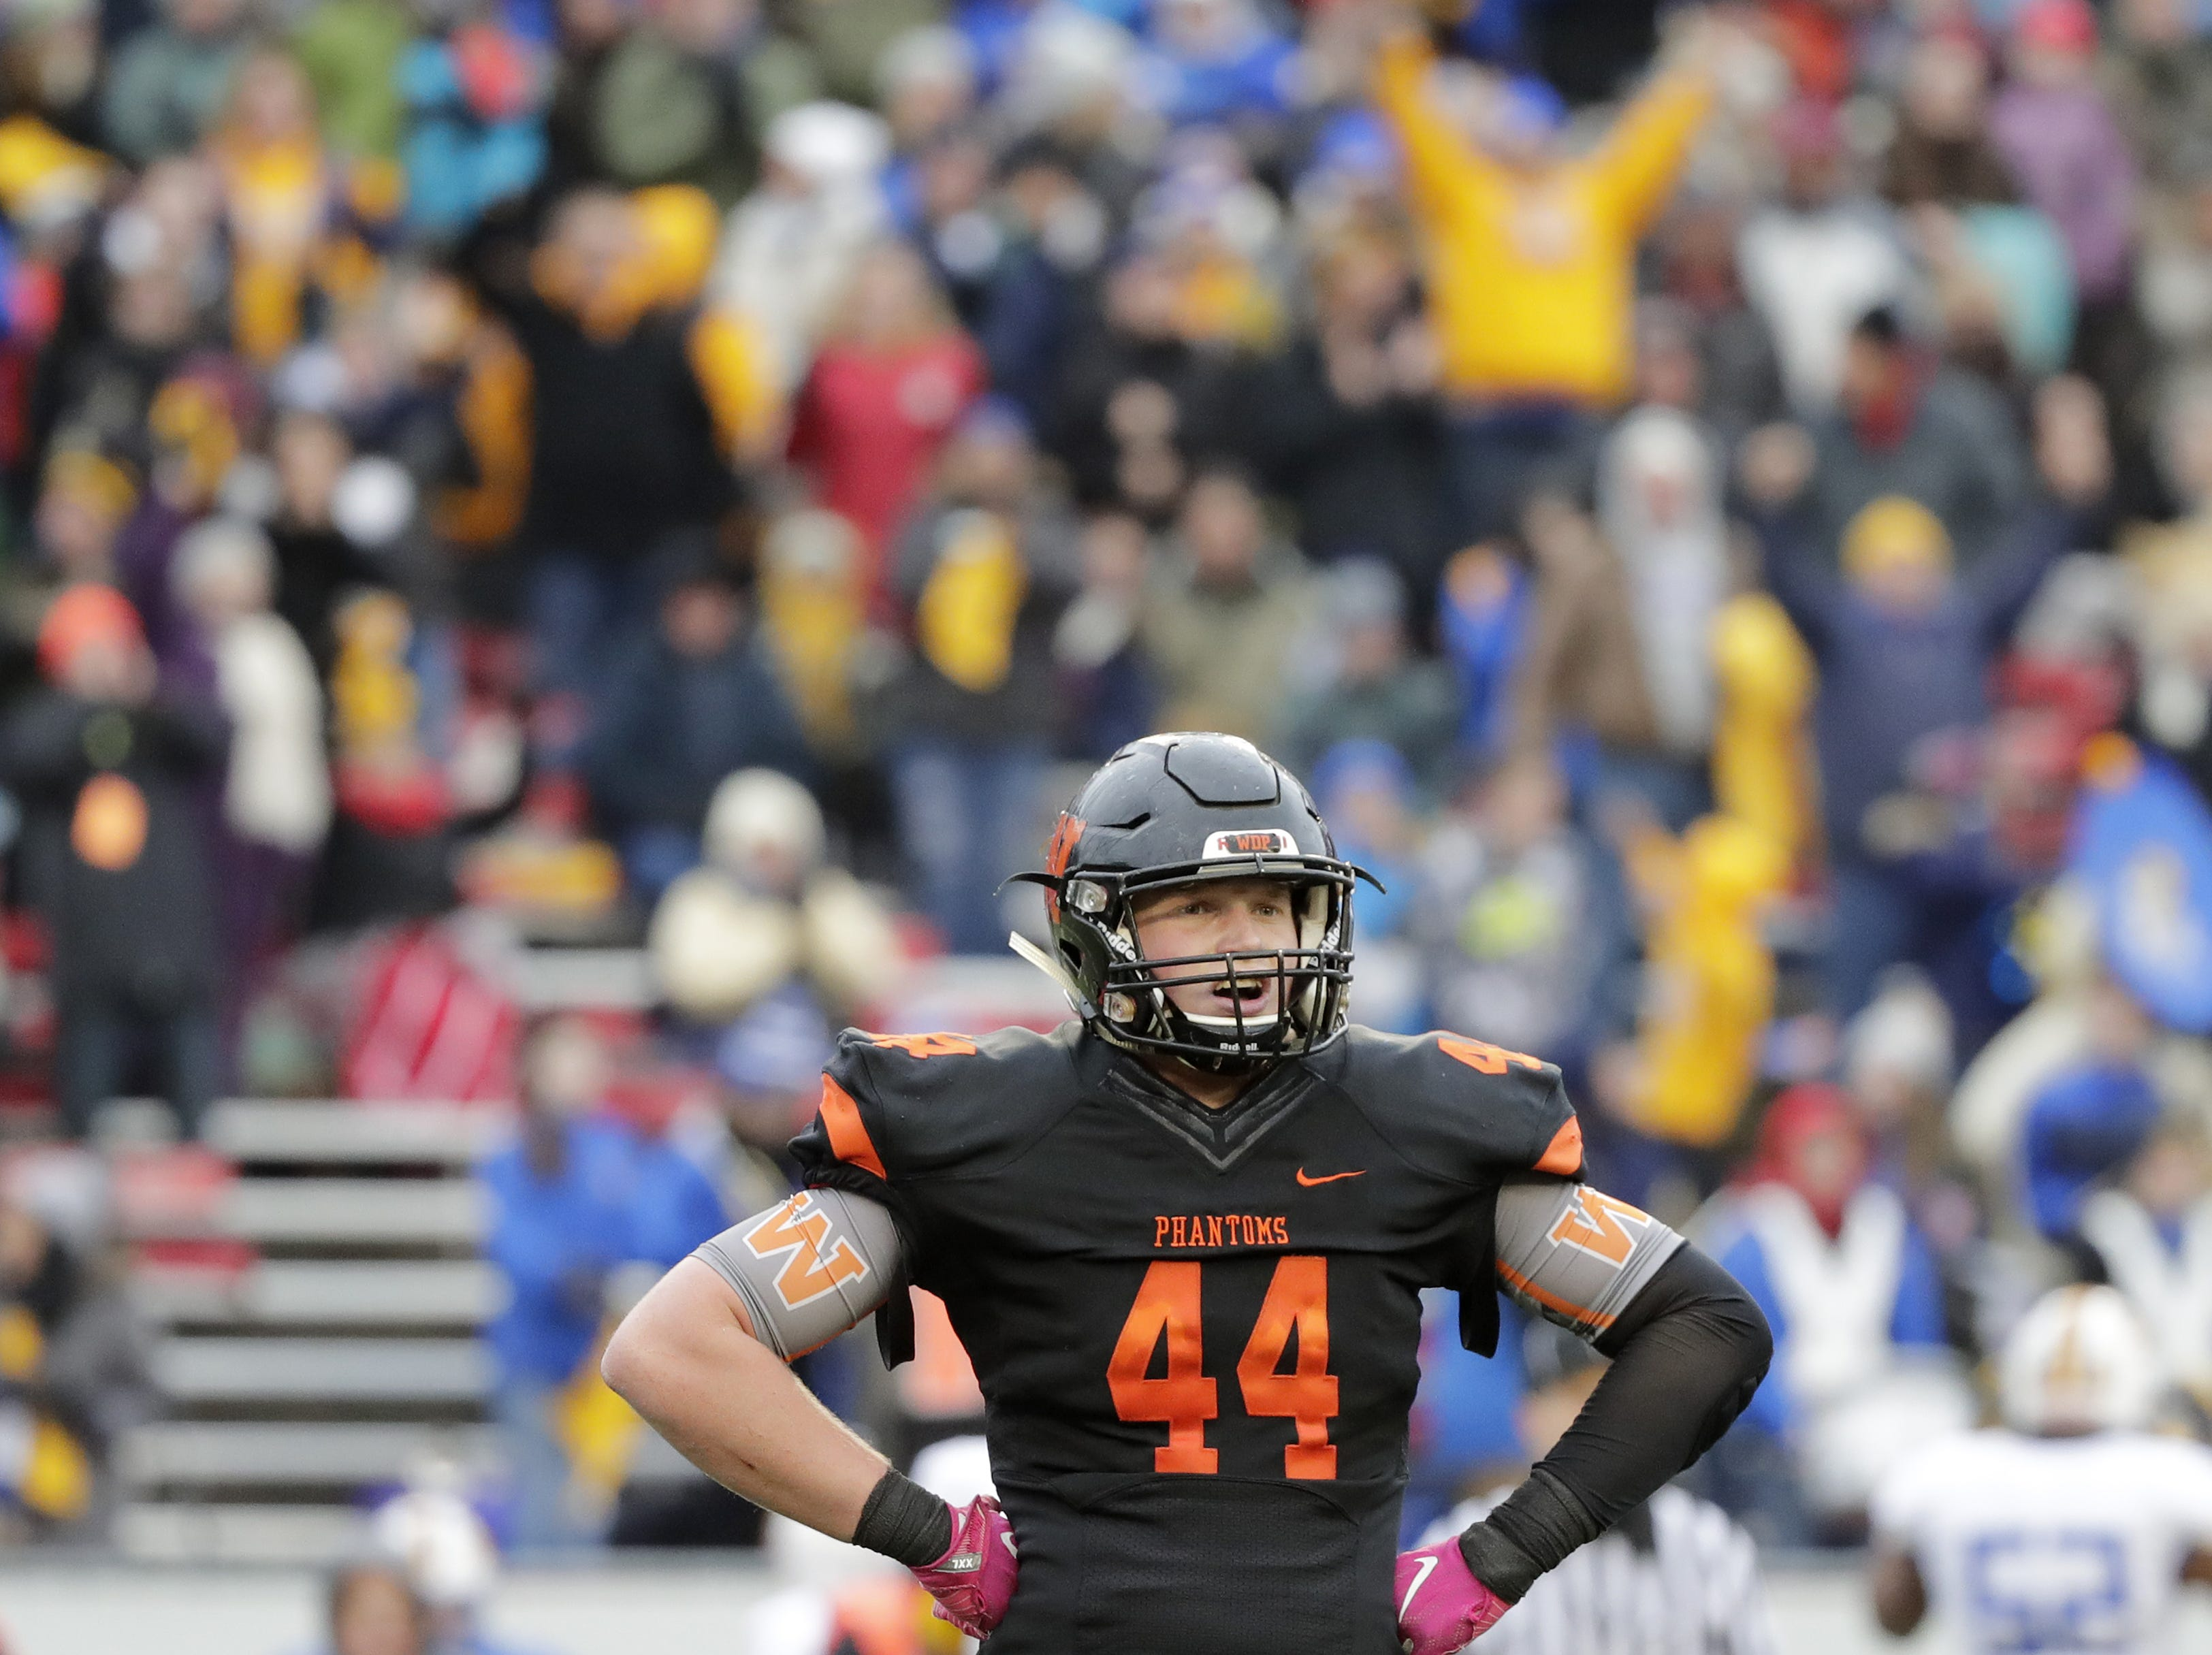 West De Pere's Jake Karchinski (44) reacts in the final minute of the Phantoms loss to Catholic Memorial in the WIAA Division 3 championship game at Camp Randall Stadium on Friday, November 16, 2018 in Madison, Wis.